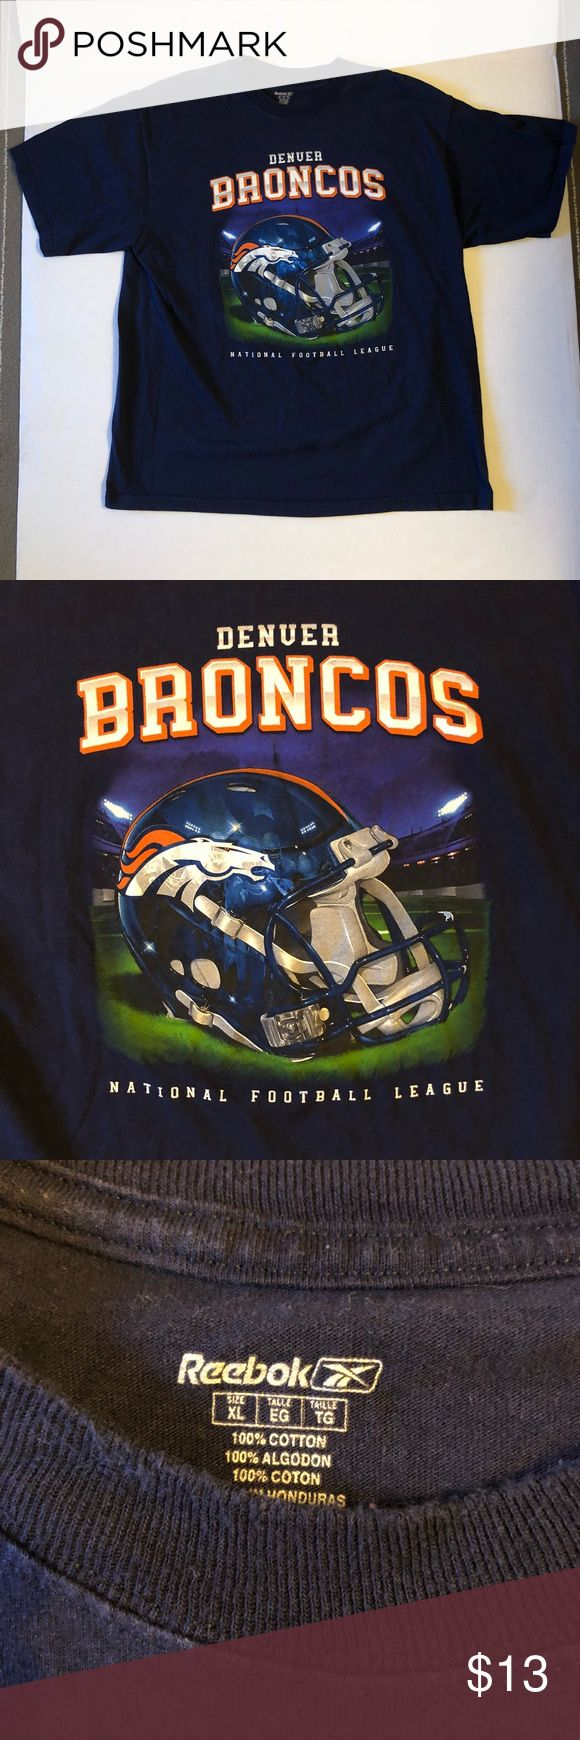 Denver Broncos NFL T-Shirt Mens XL Denver Broncos NFL T-Shirt Xtra-Large  For sale is a good condition Denver Broncos t-Shirt size men's XL. In good condition the shirt has no smells, odors and rips or tears.   Shirt ships out fast and free. Reebok Shirts Tees - Short Sleeve